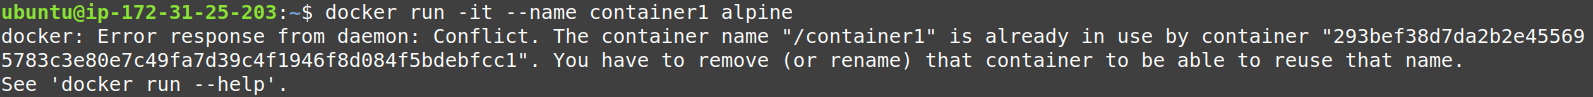 We can not create a new container with previously used name